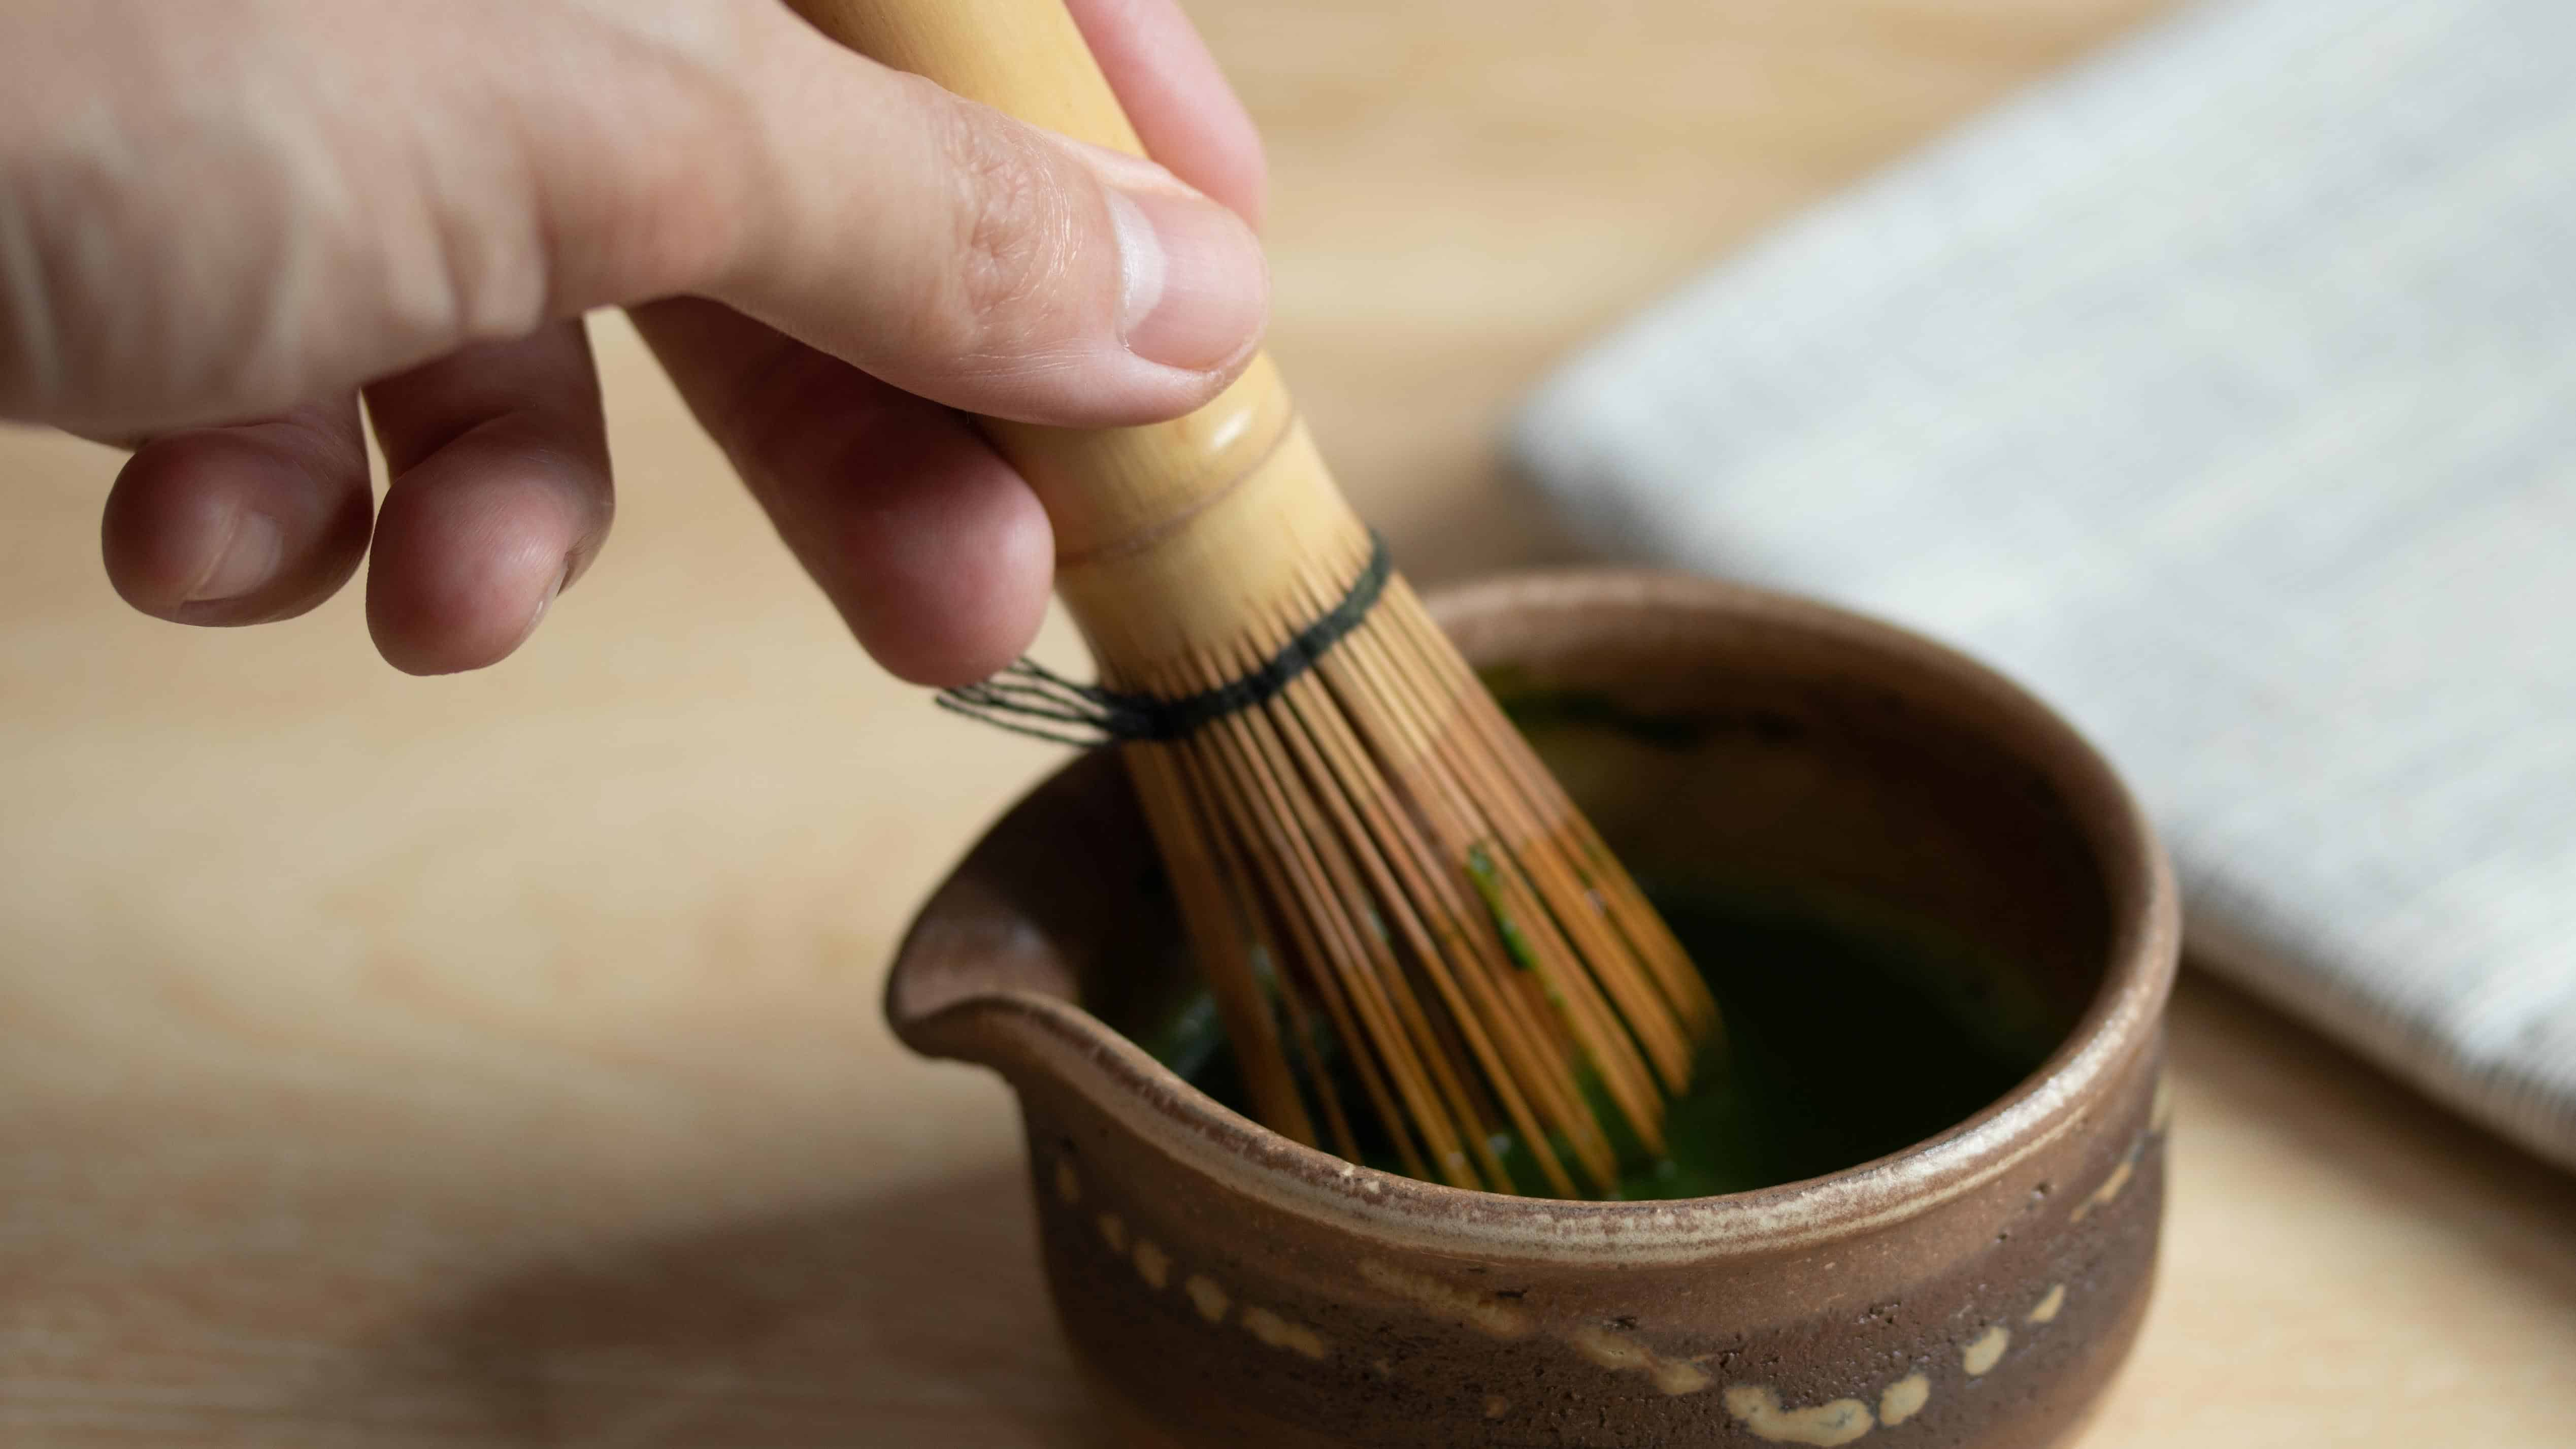 Whisking matcha powder and water with bamboo whisk in a bowl